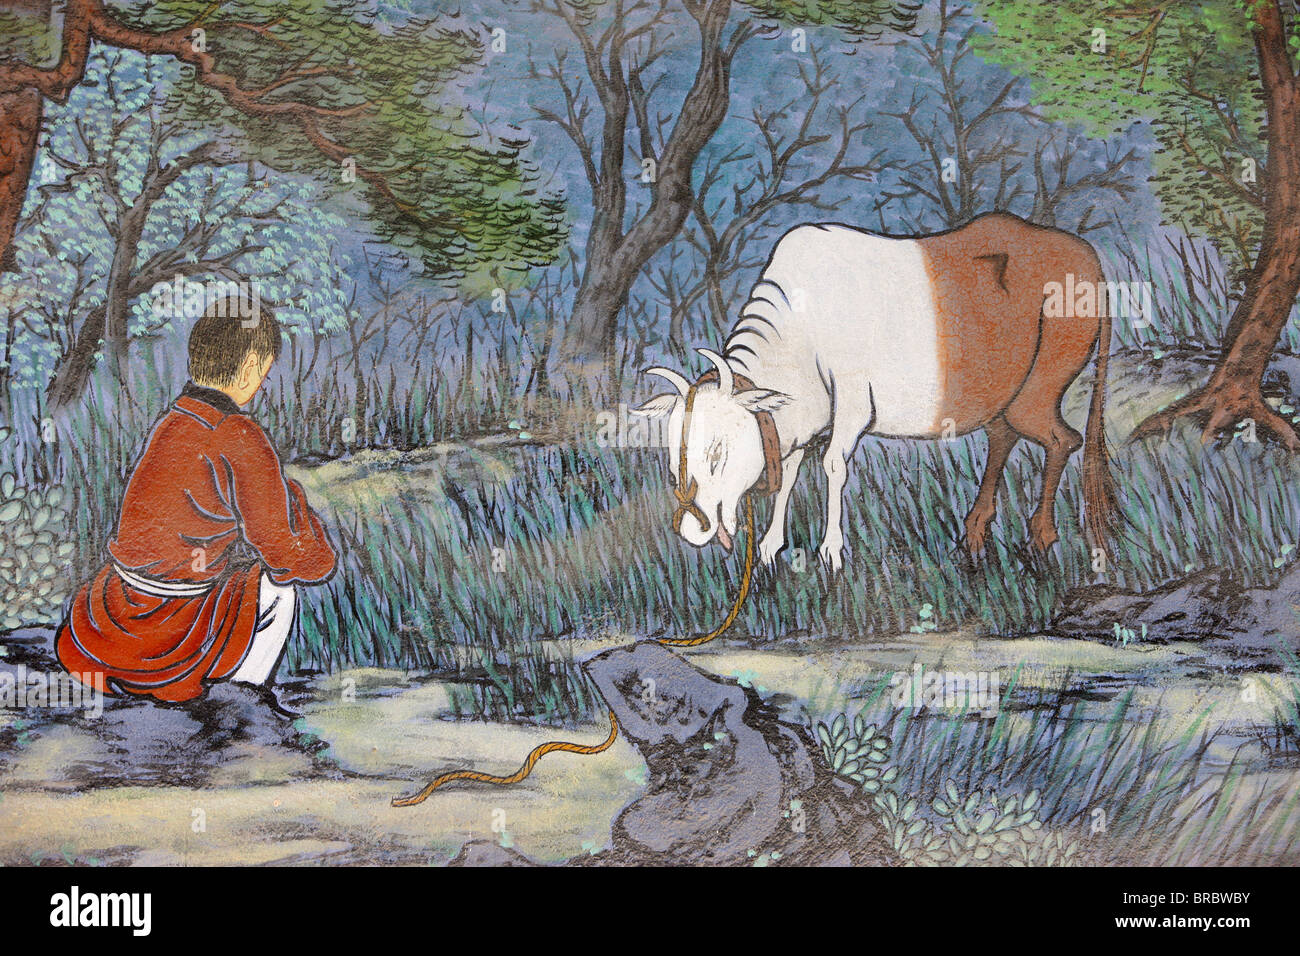 Painting of herding the Ox, from the ten Ox Herding Pictures of Zen Buddhism, Seoul, South Korea - Stock Image